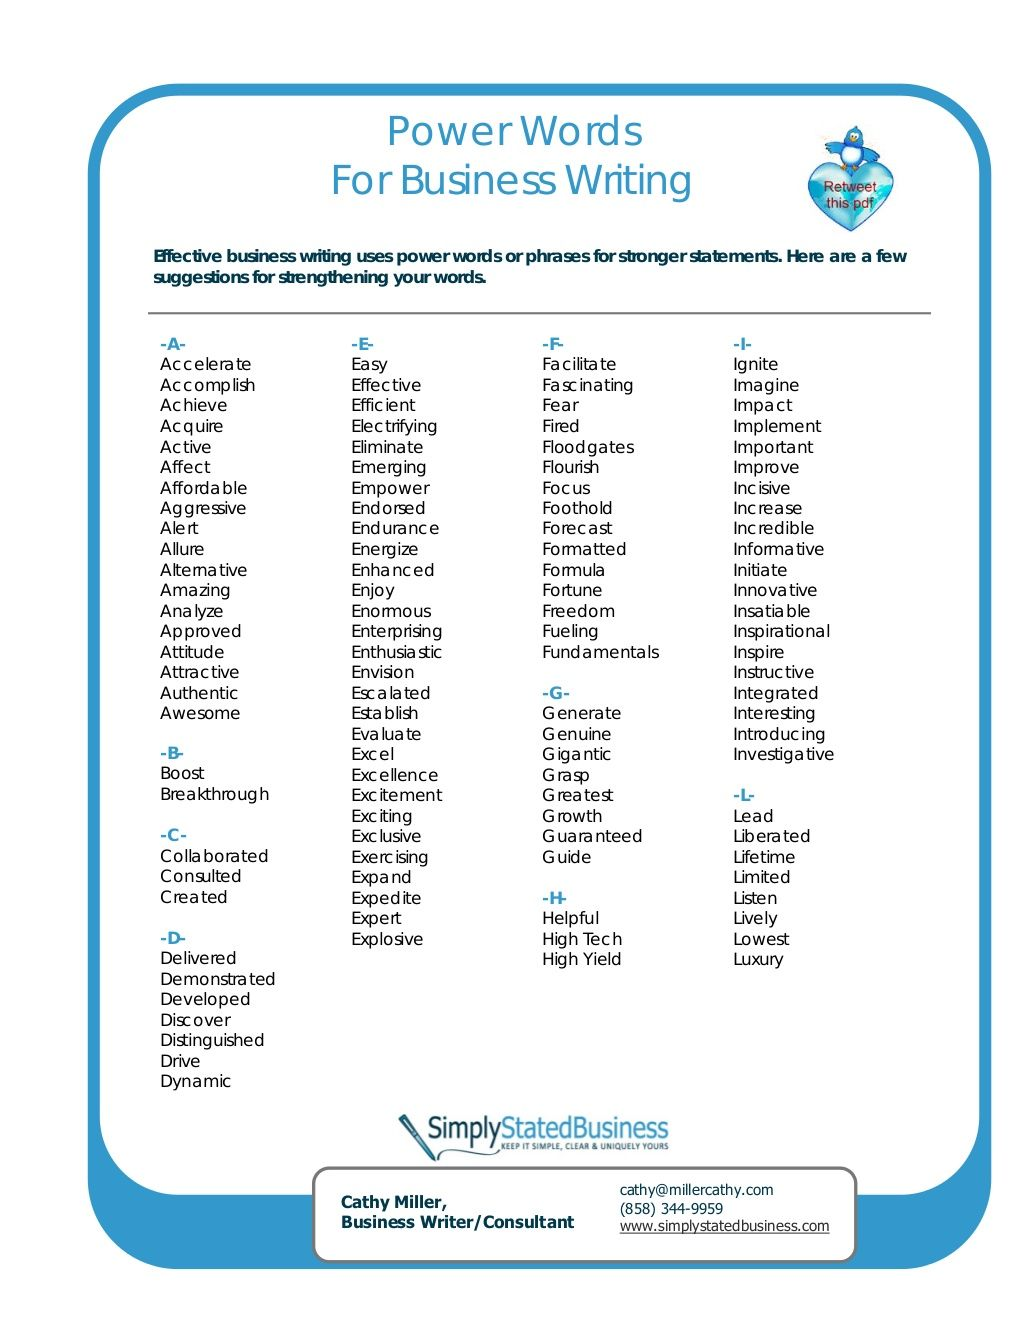 Power Words 17806994 By Cathy Miller Business Writer Consultant Via Slideshare Powerful Words Business Writing Persuasive Words